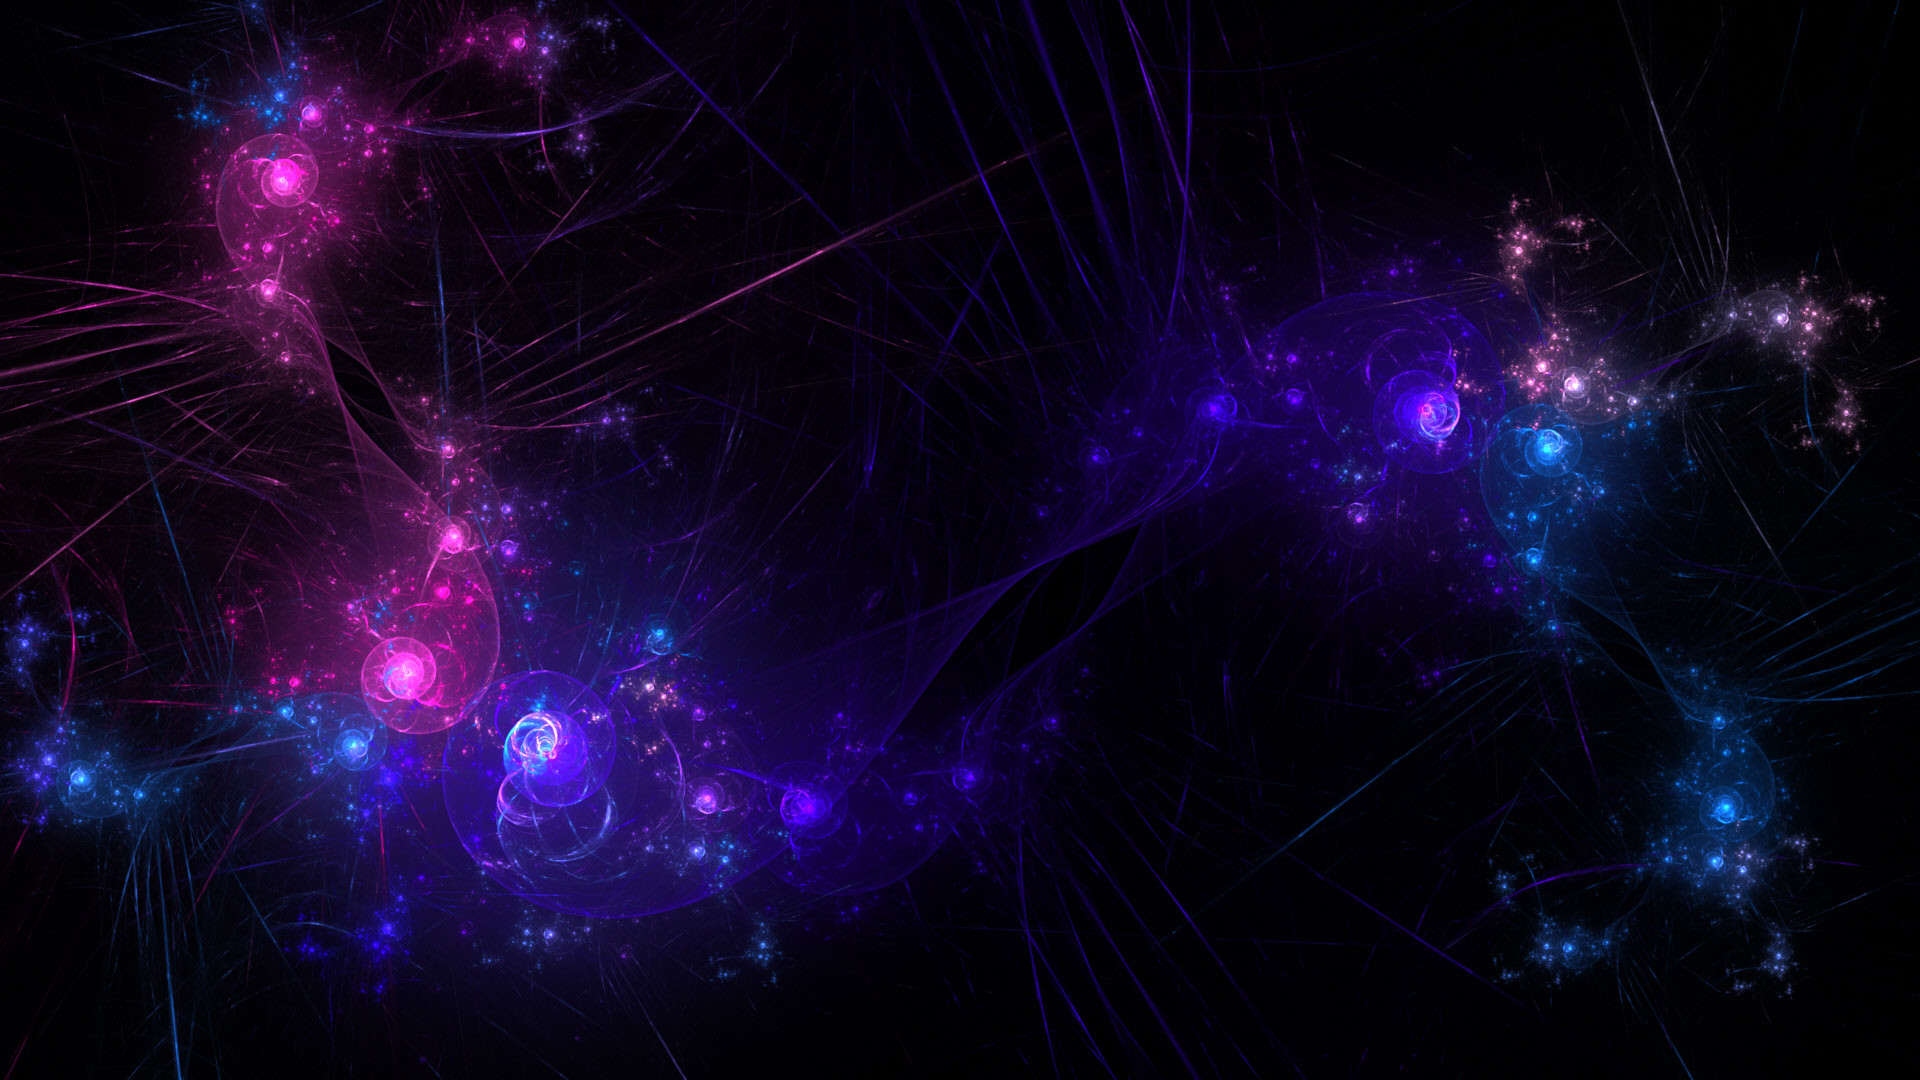 Gaming Wallpaper 1920x1080: Abstract Gaming Wallpapers 1080p (69+ Images